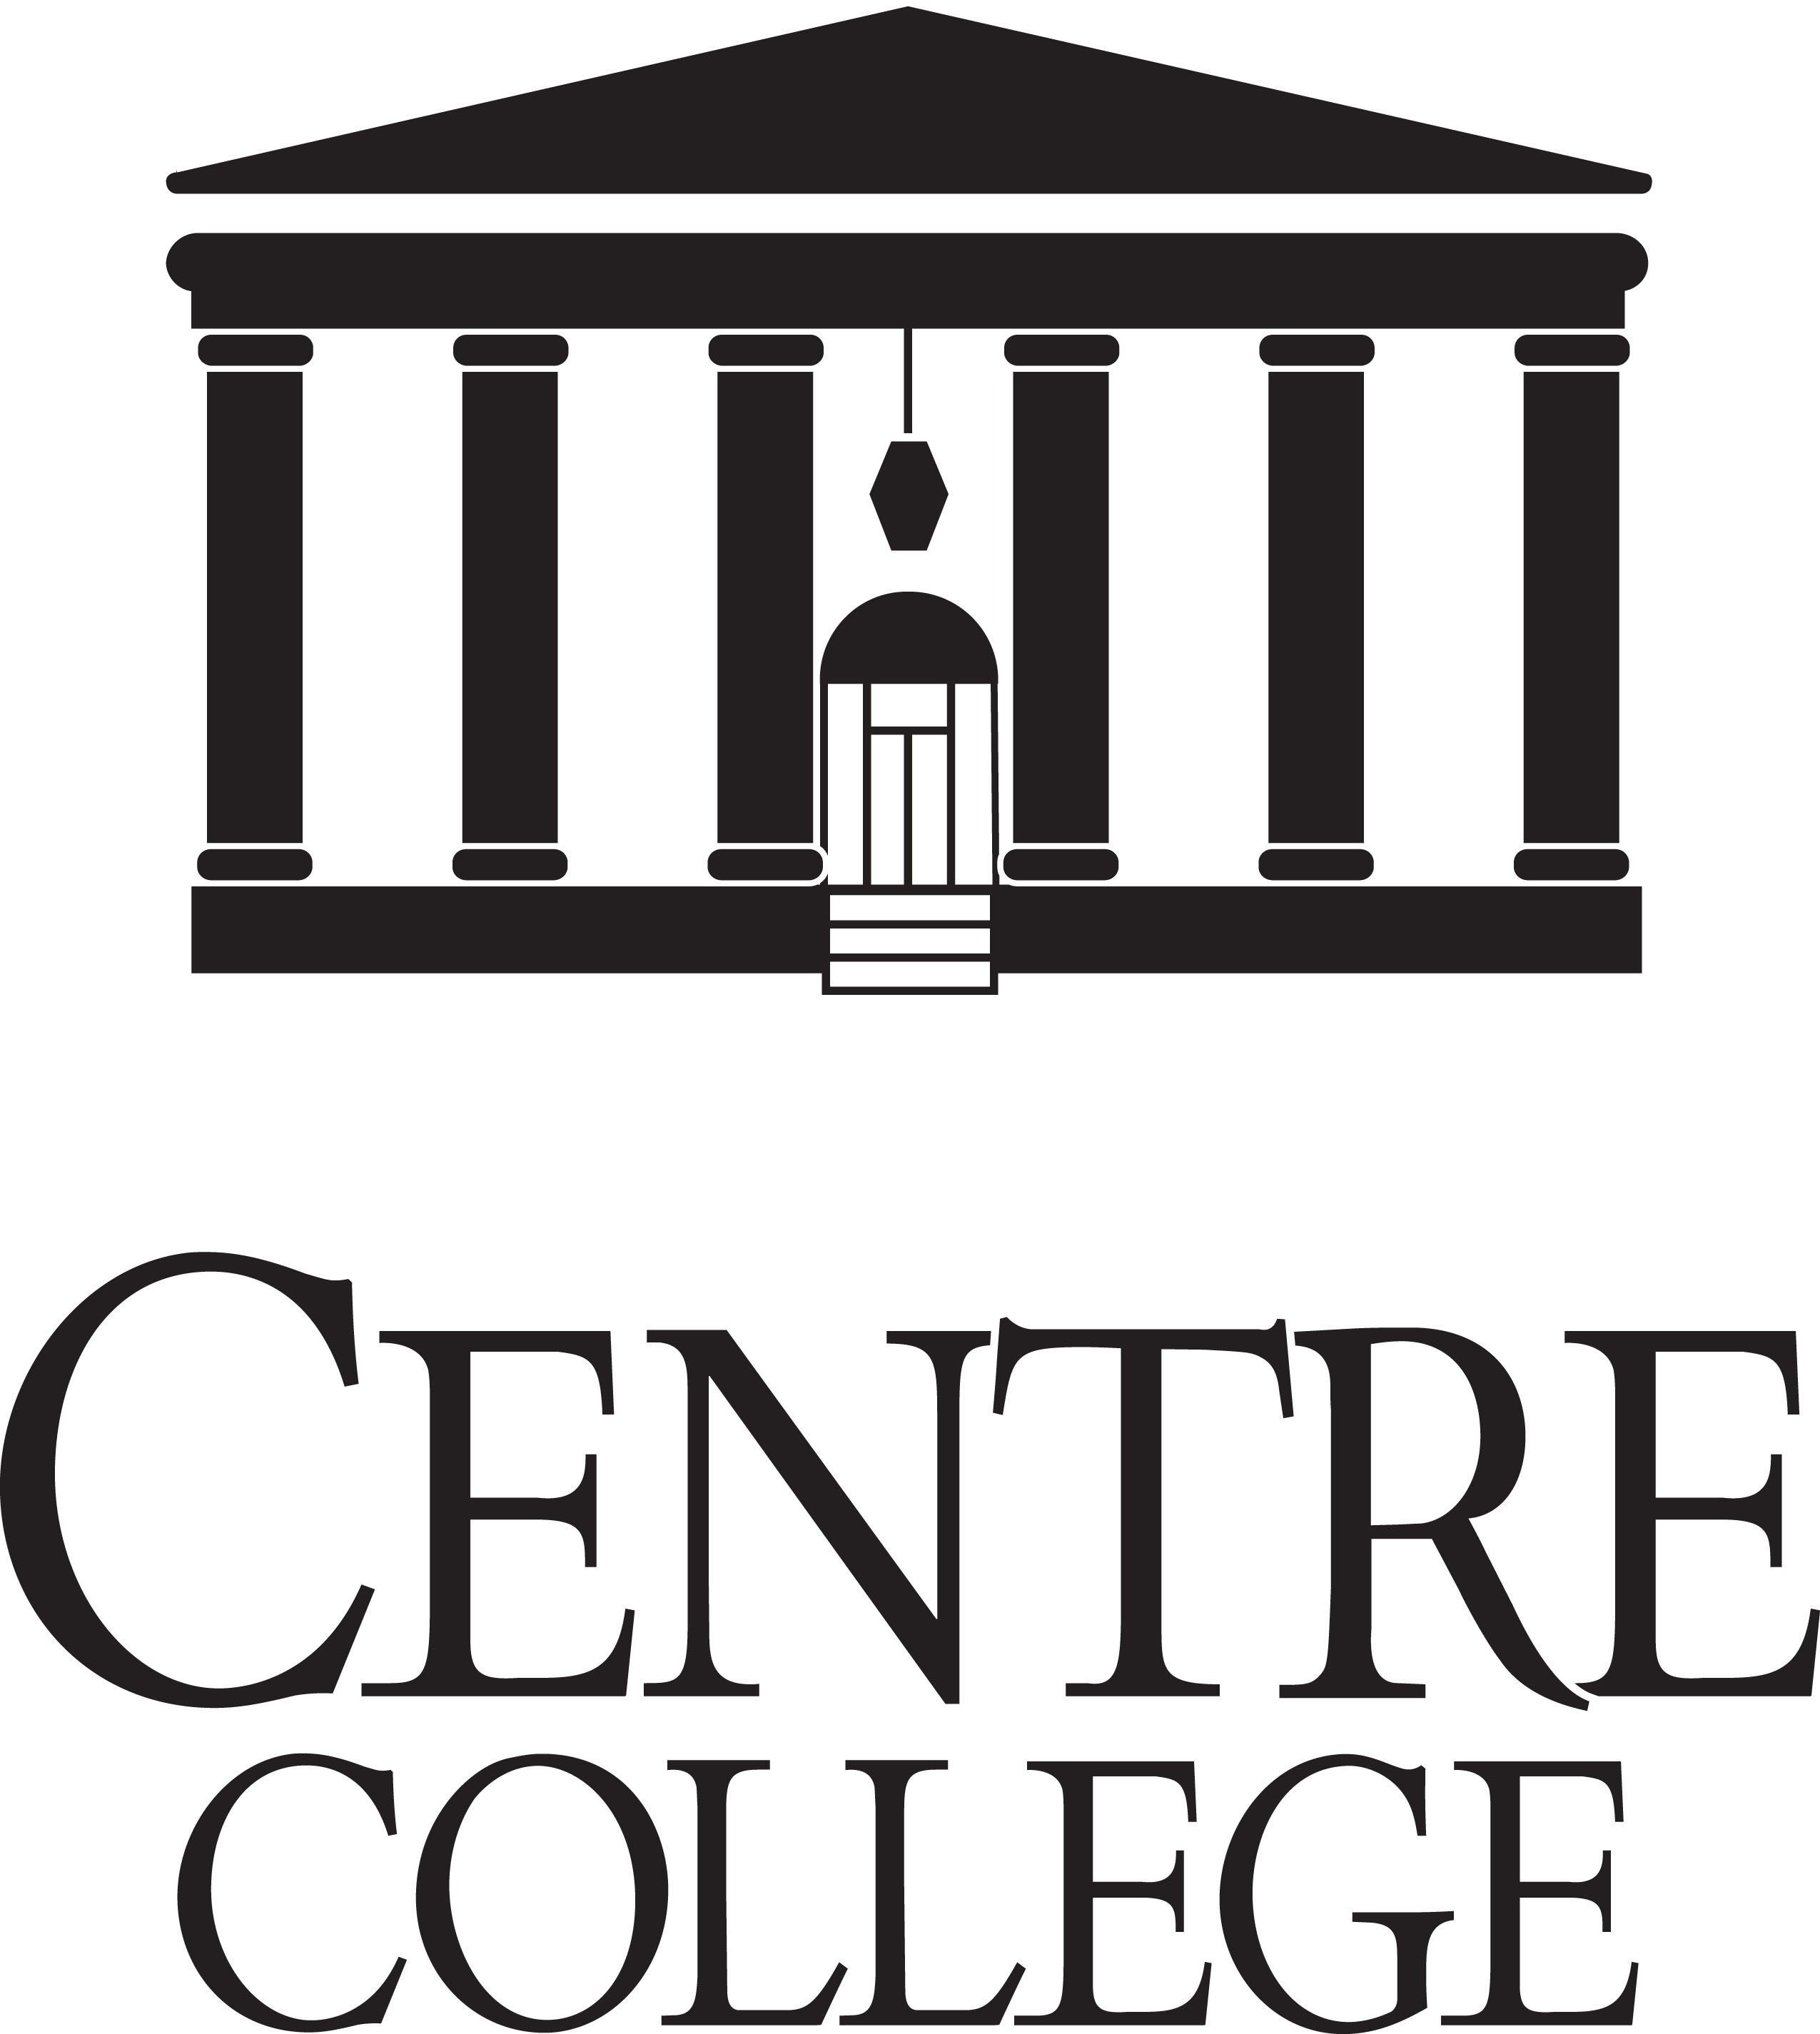 Centre College is one of many colleges where Laurel